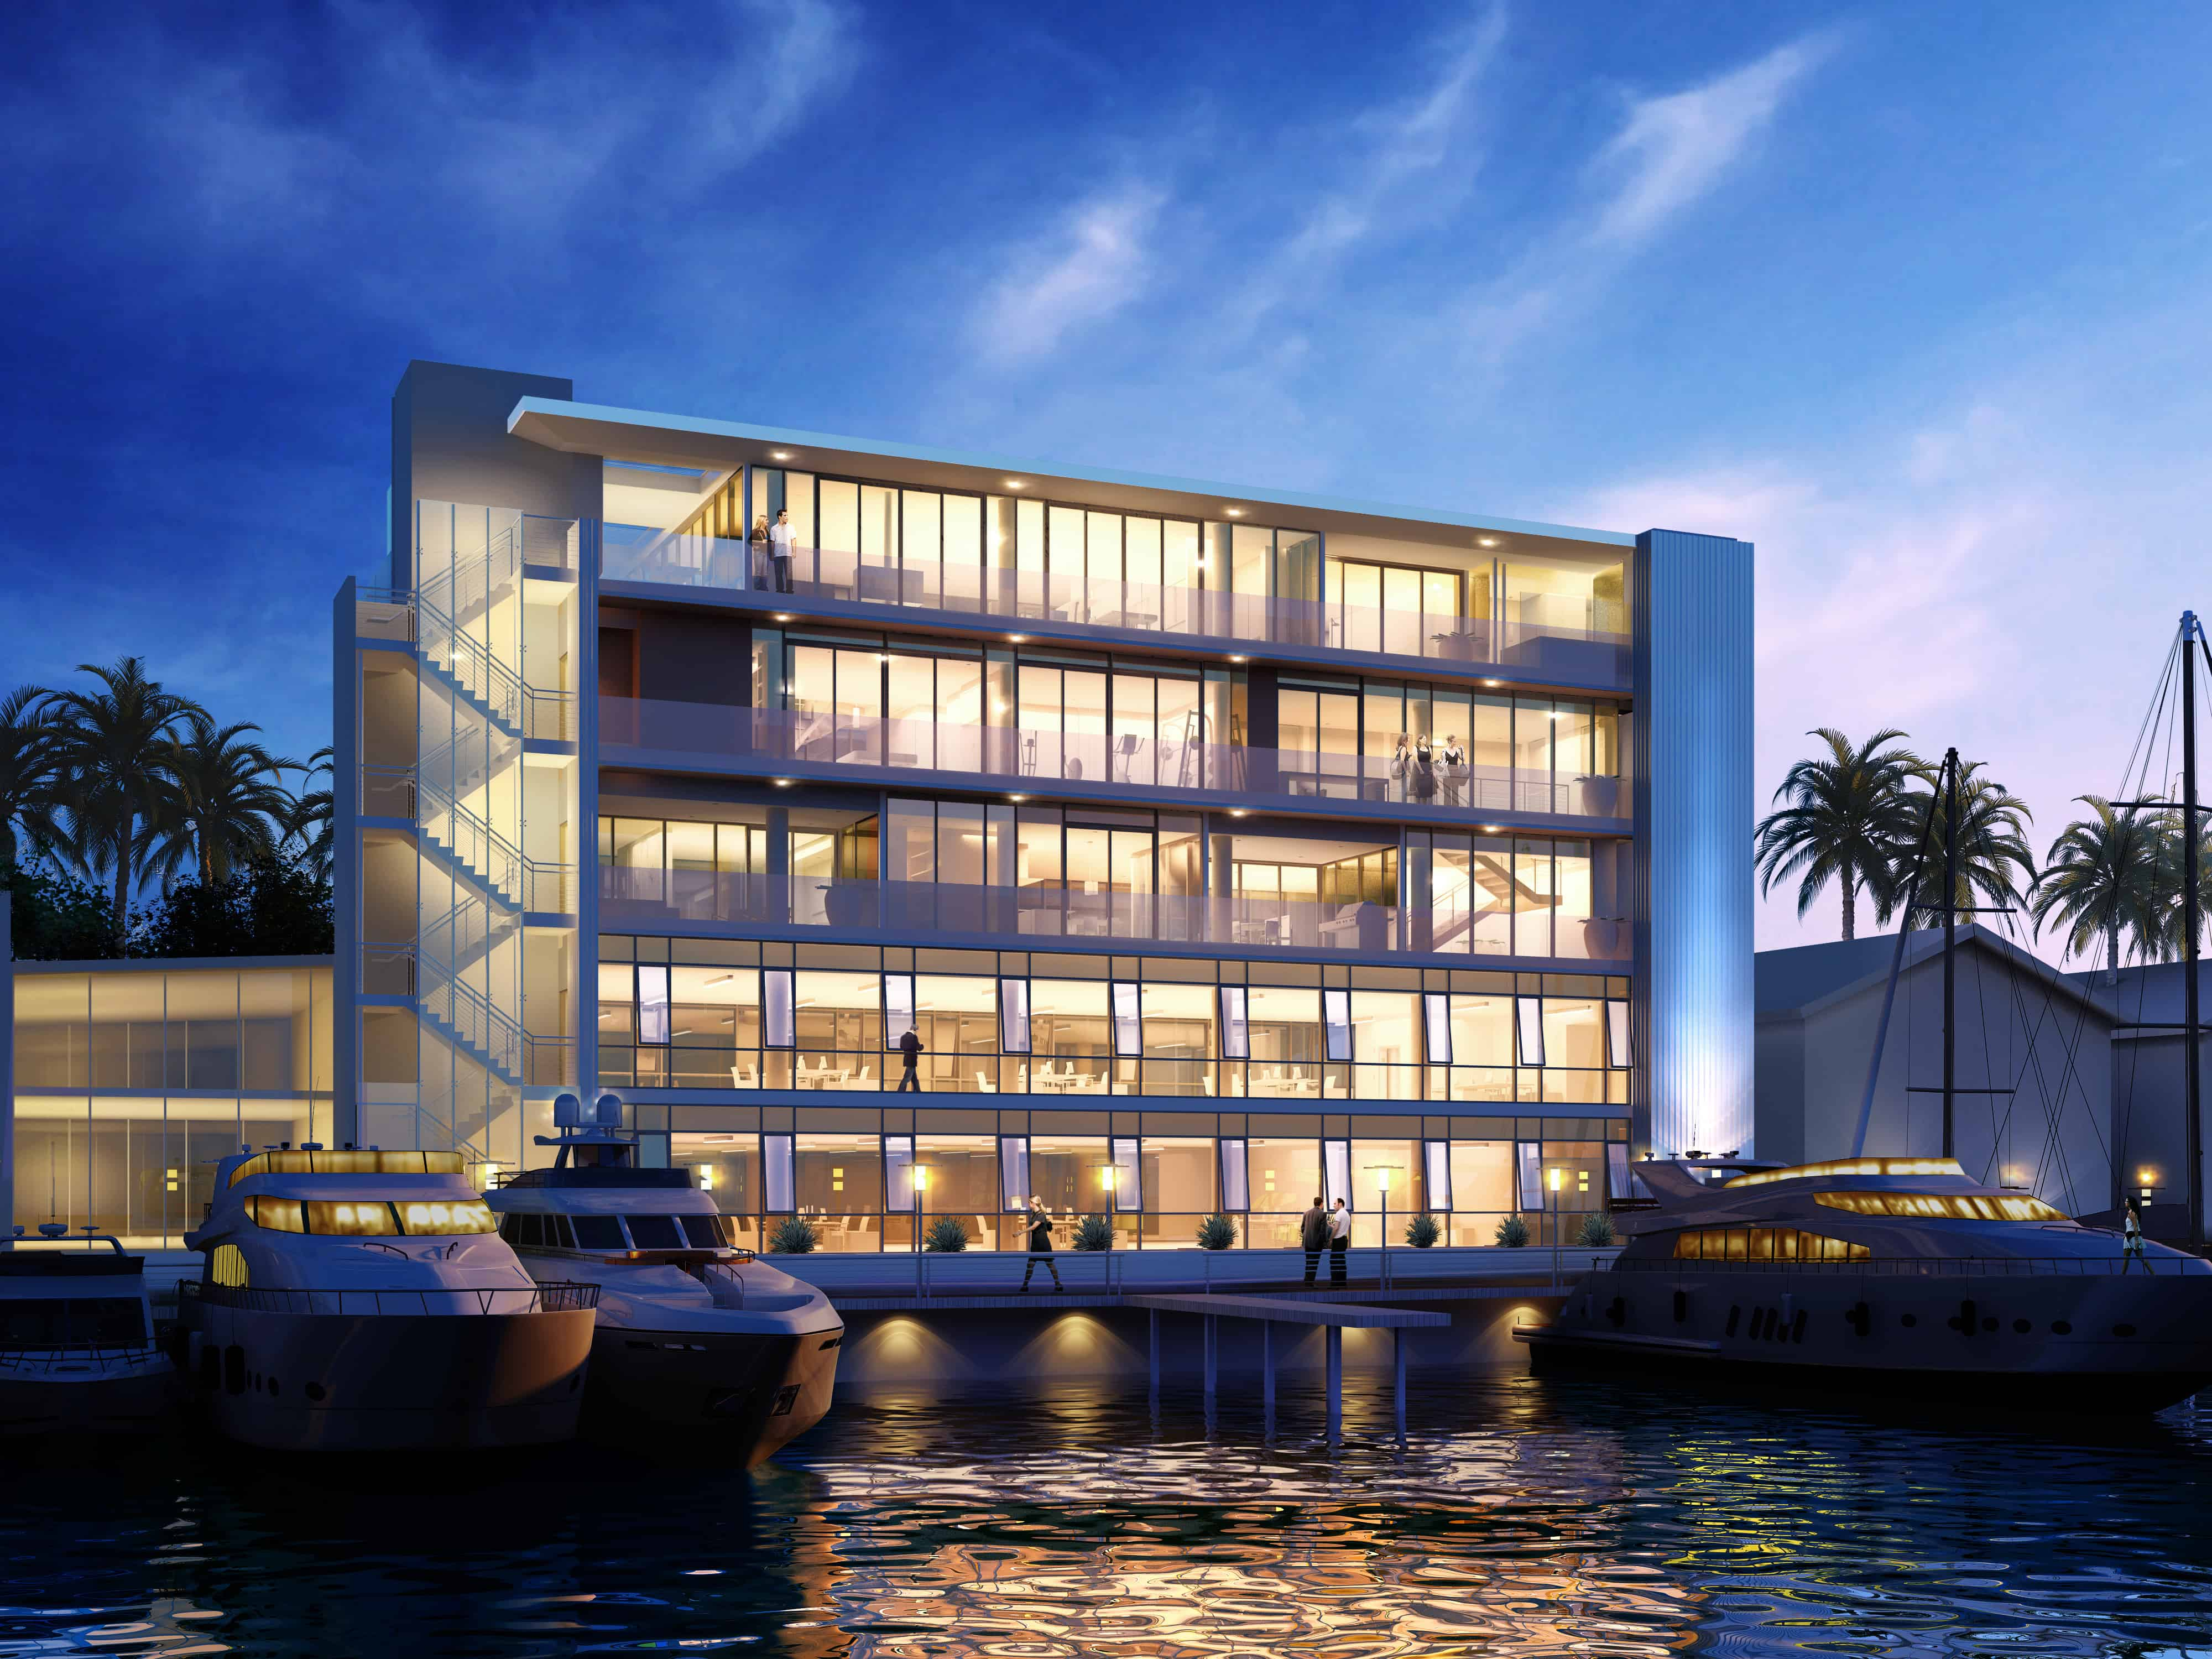 0934_3388 Via Lido_Harbor rendering dusk -final